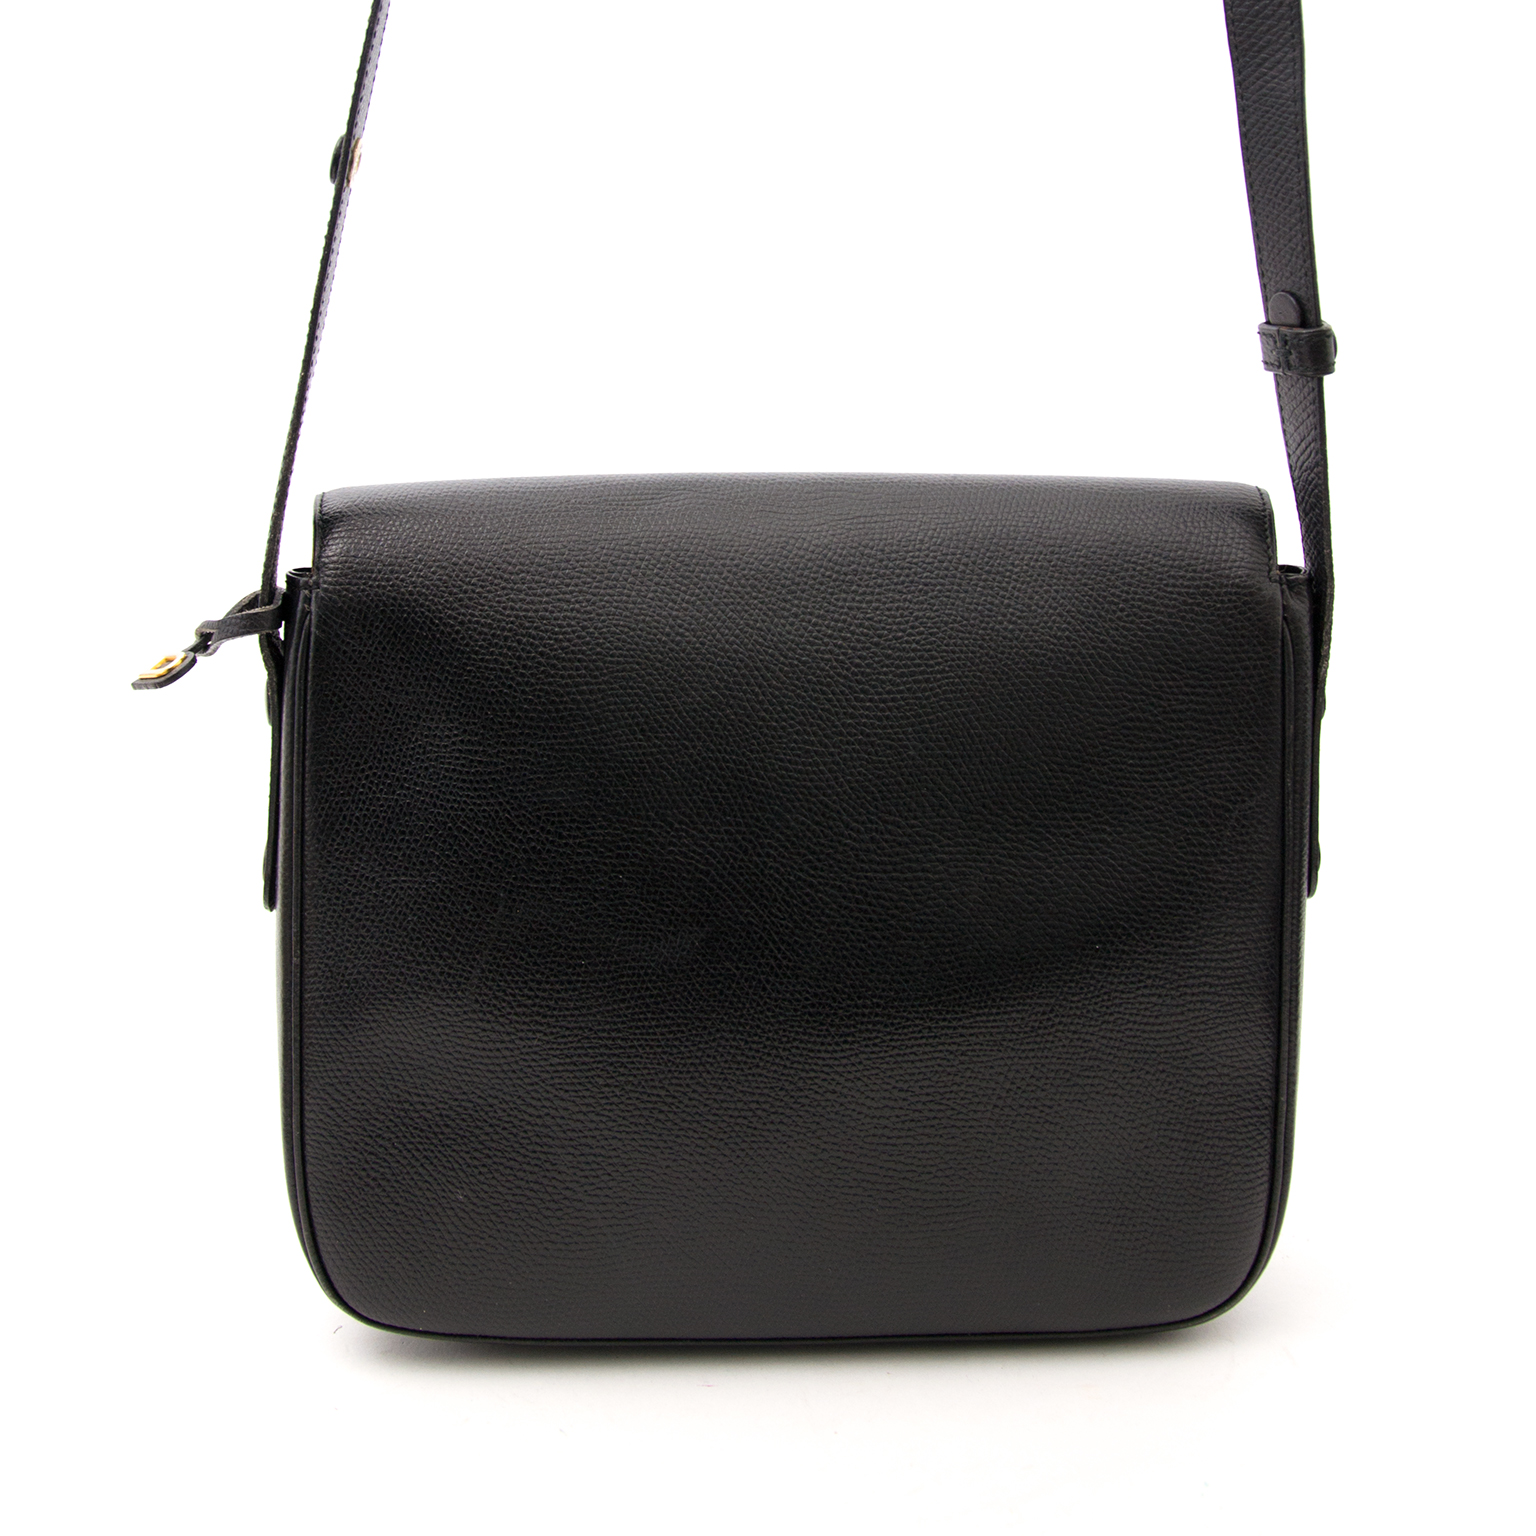 Authentic Delvaux Black Crossbody Bag at Labellov.com